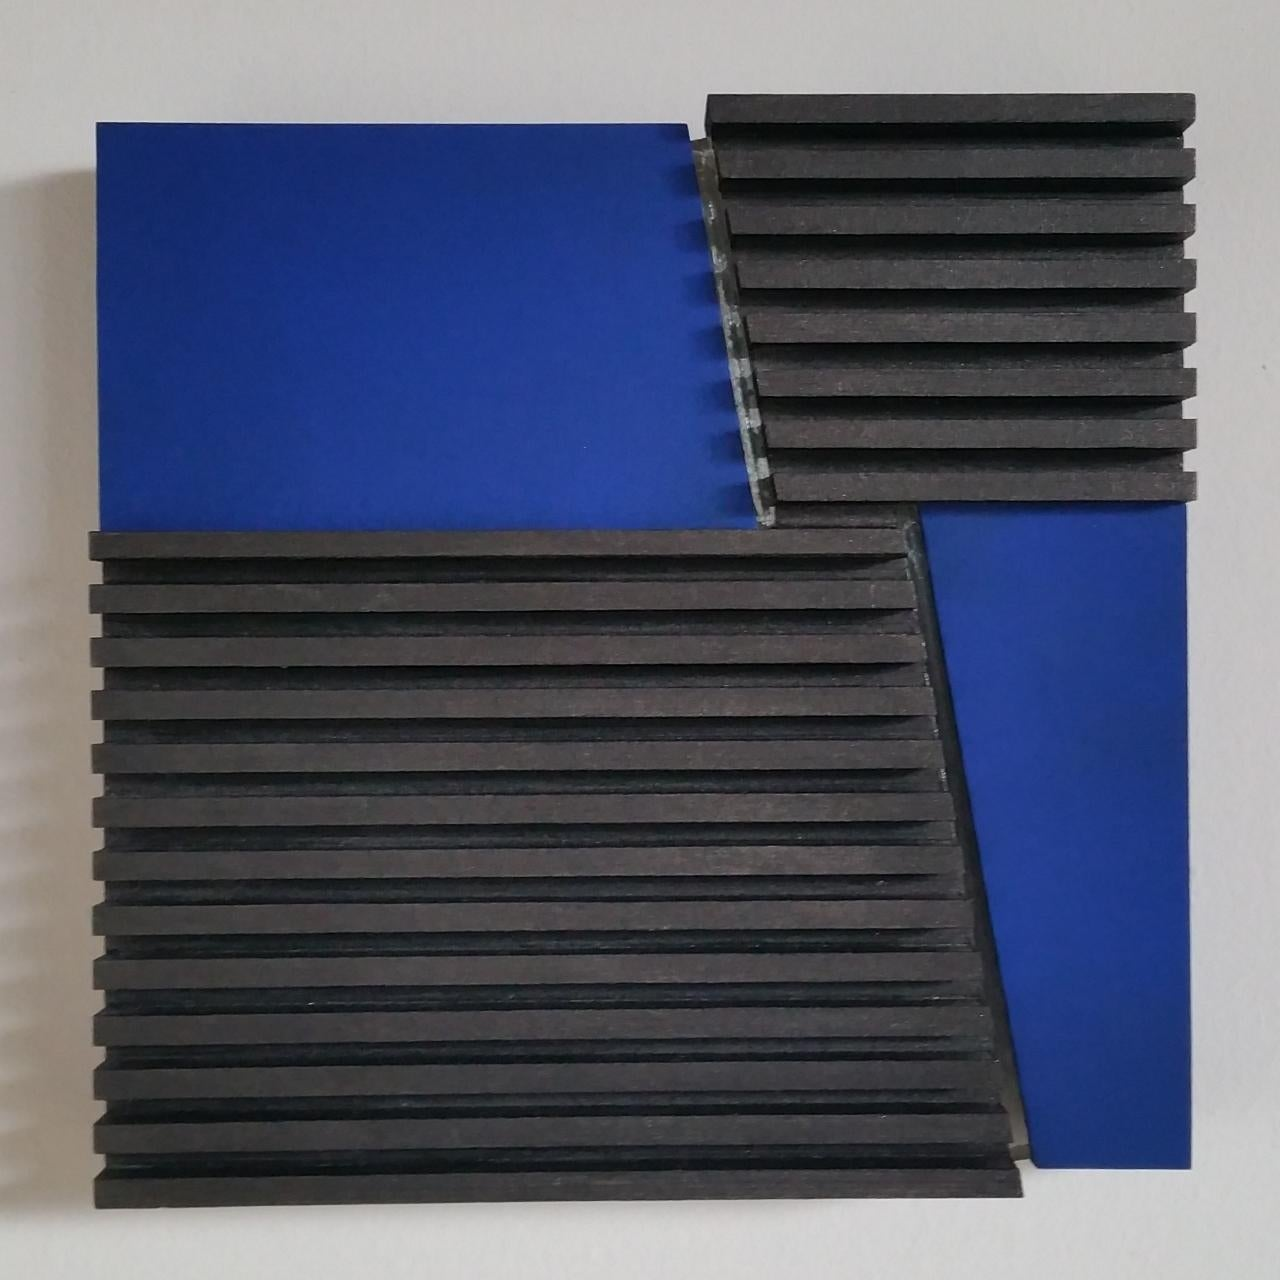 Intersection III 12/25 - blue grey contemporary modern sculpture painting relief